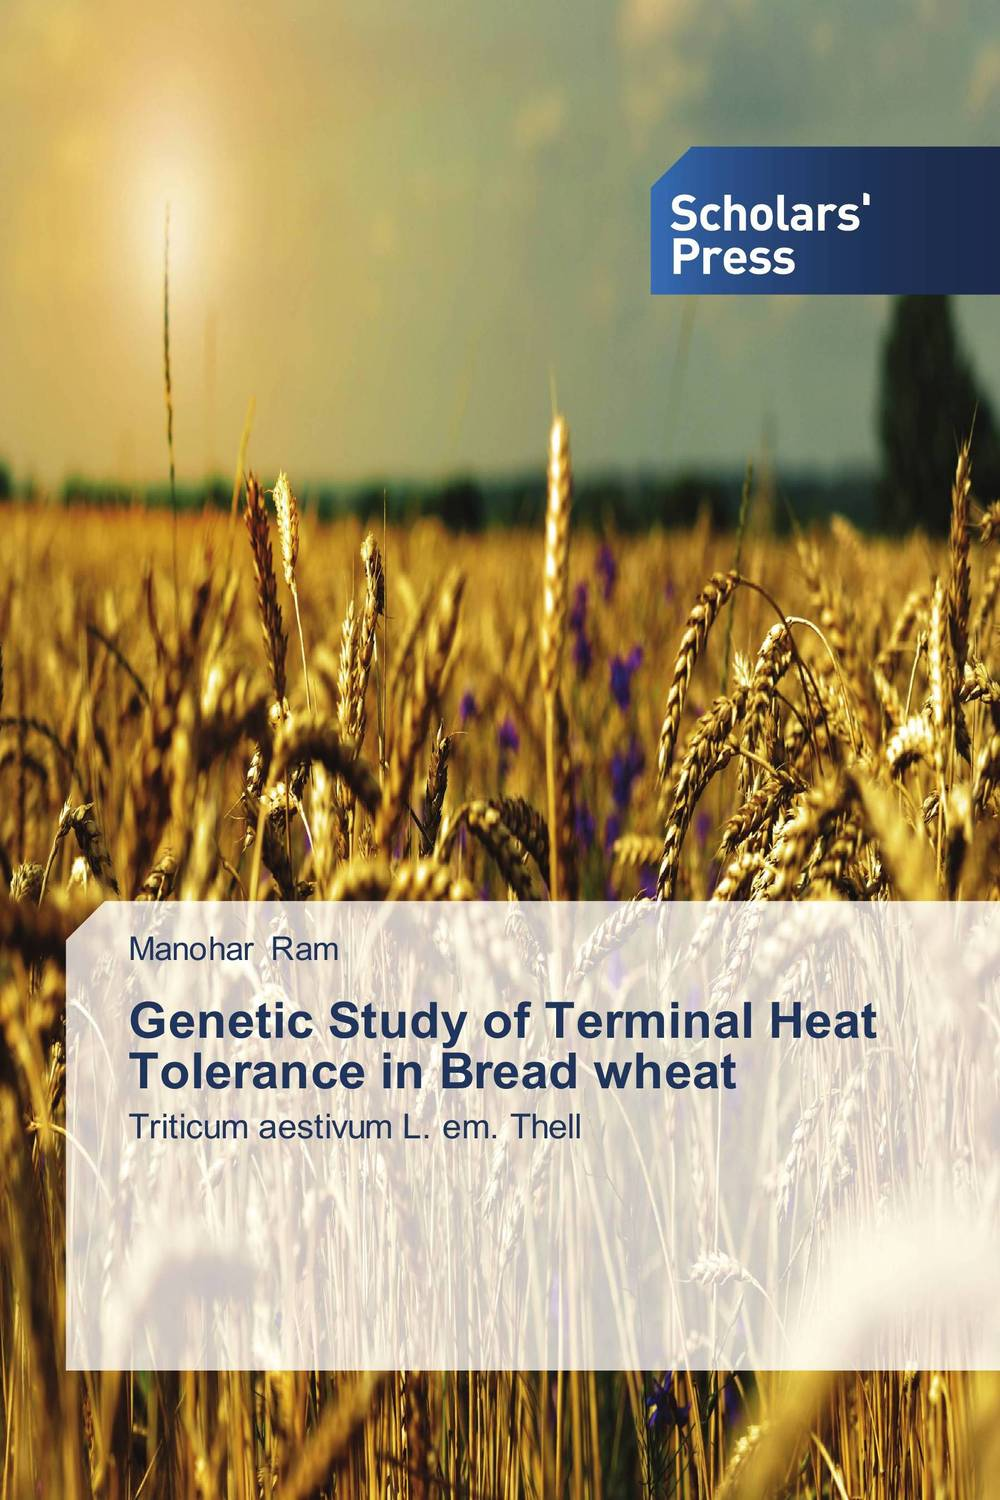 Genetic Study of Terminal Heat Tolerance in Bread wheat